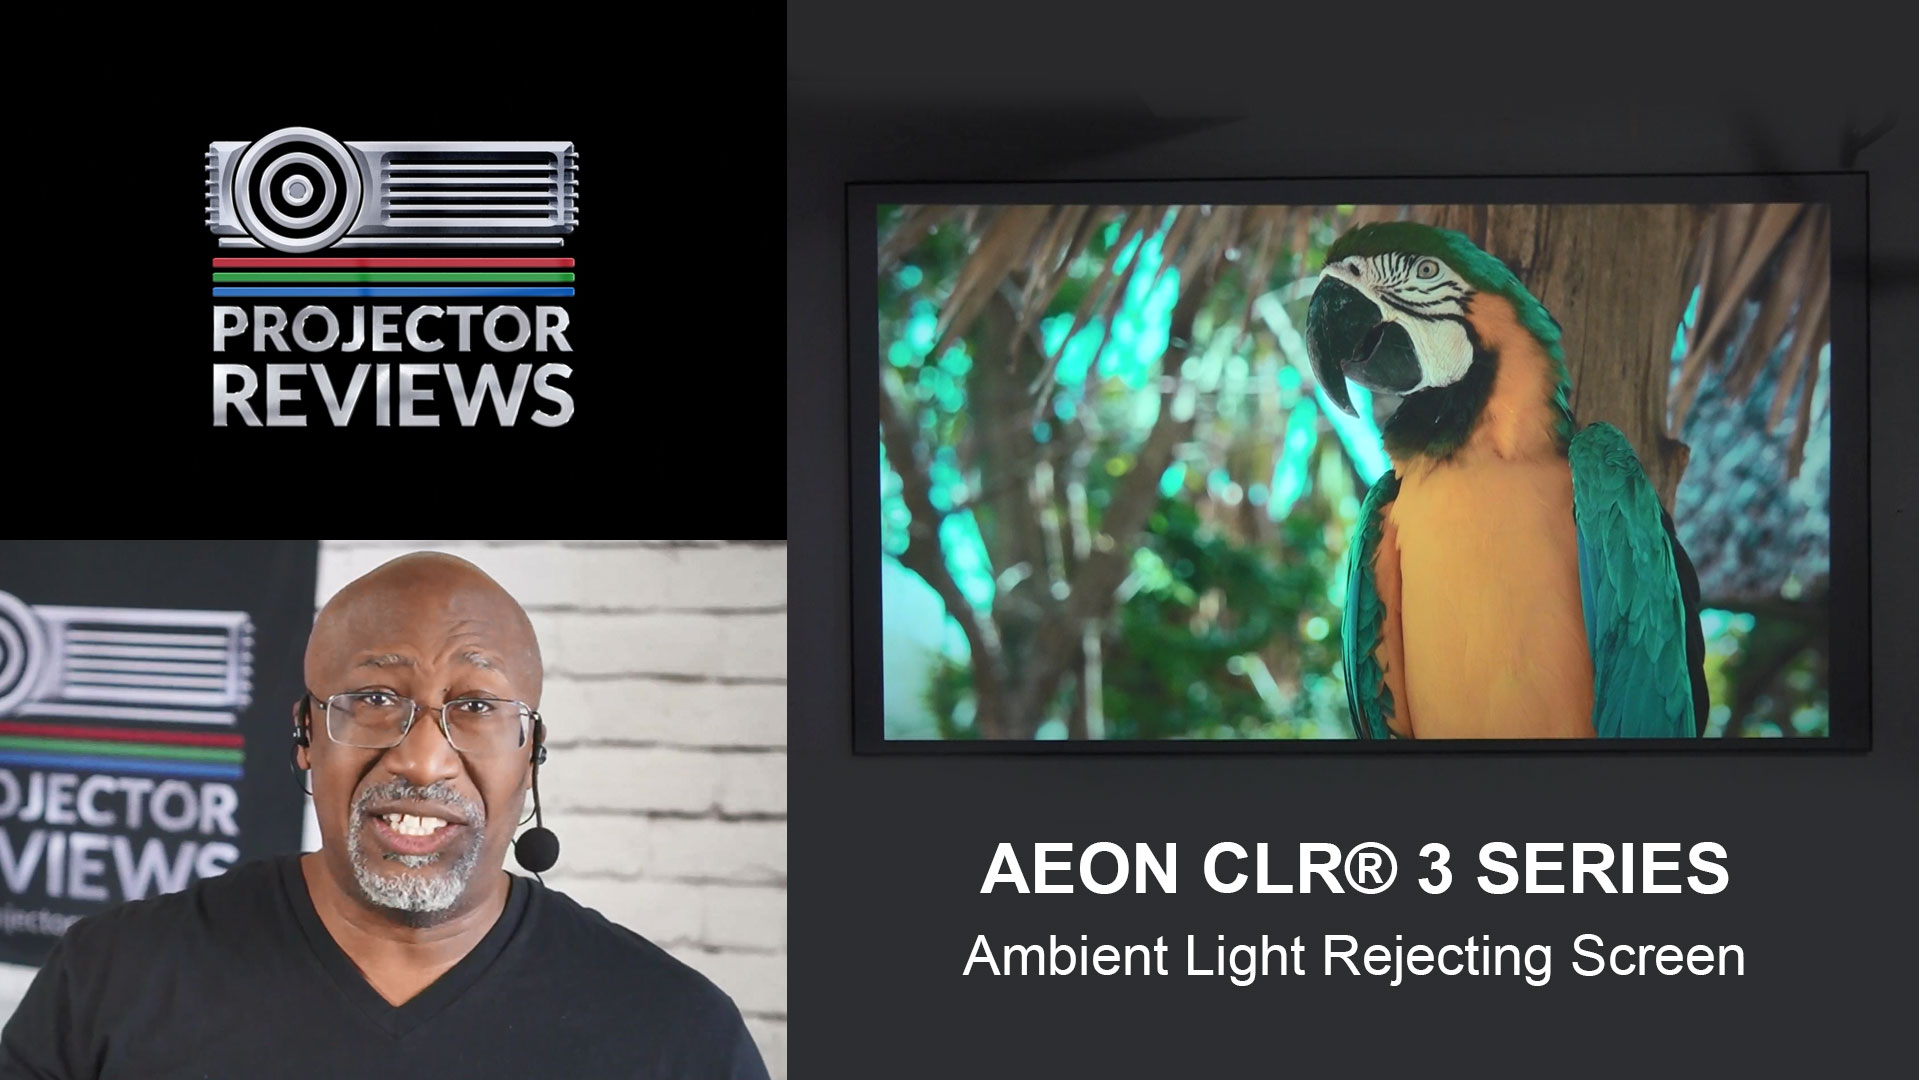 Phil Jones from Projector Reviews Evaluates the Elite Screens Aeon CLR® 3 Series